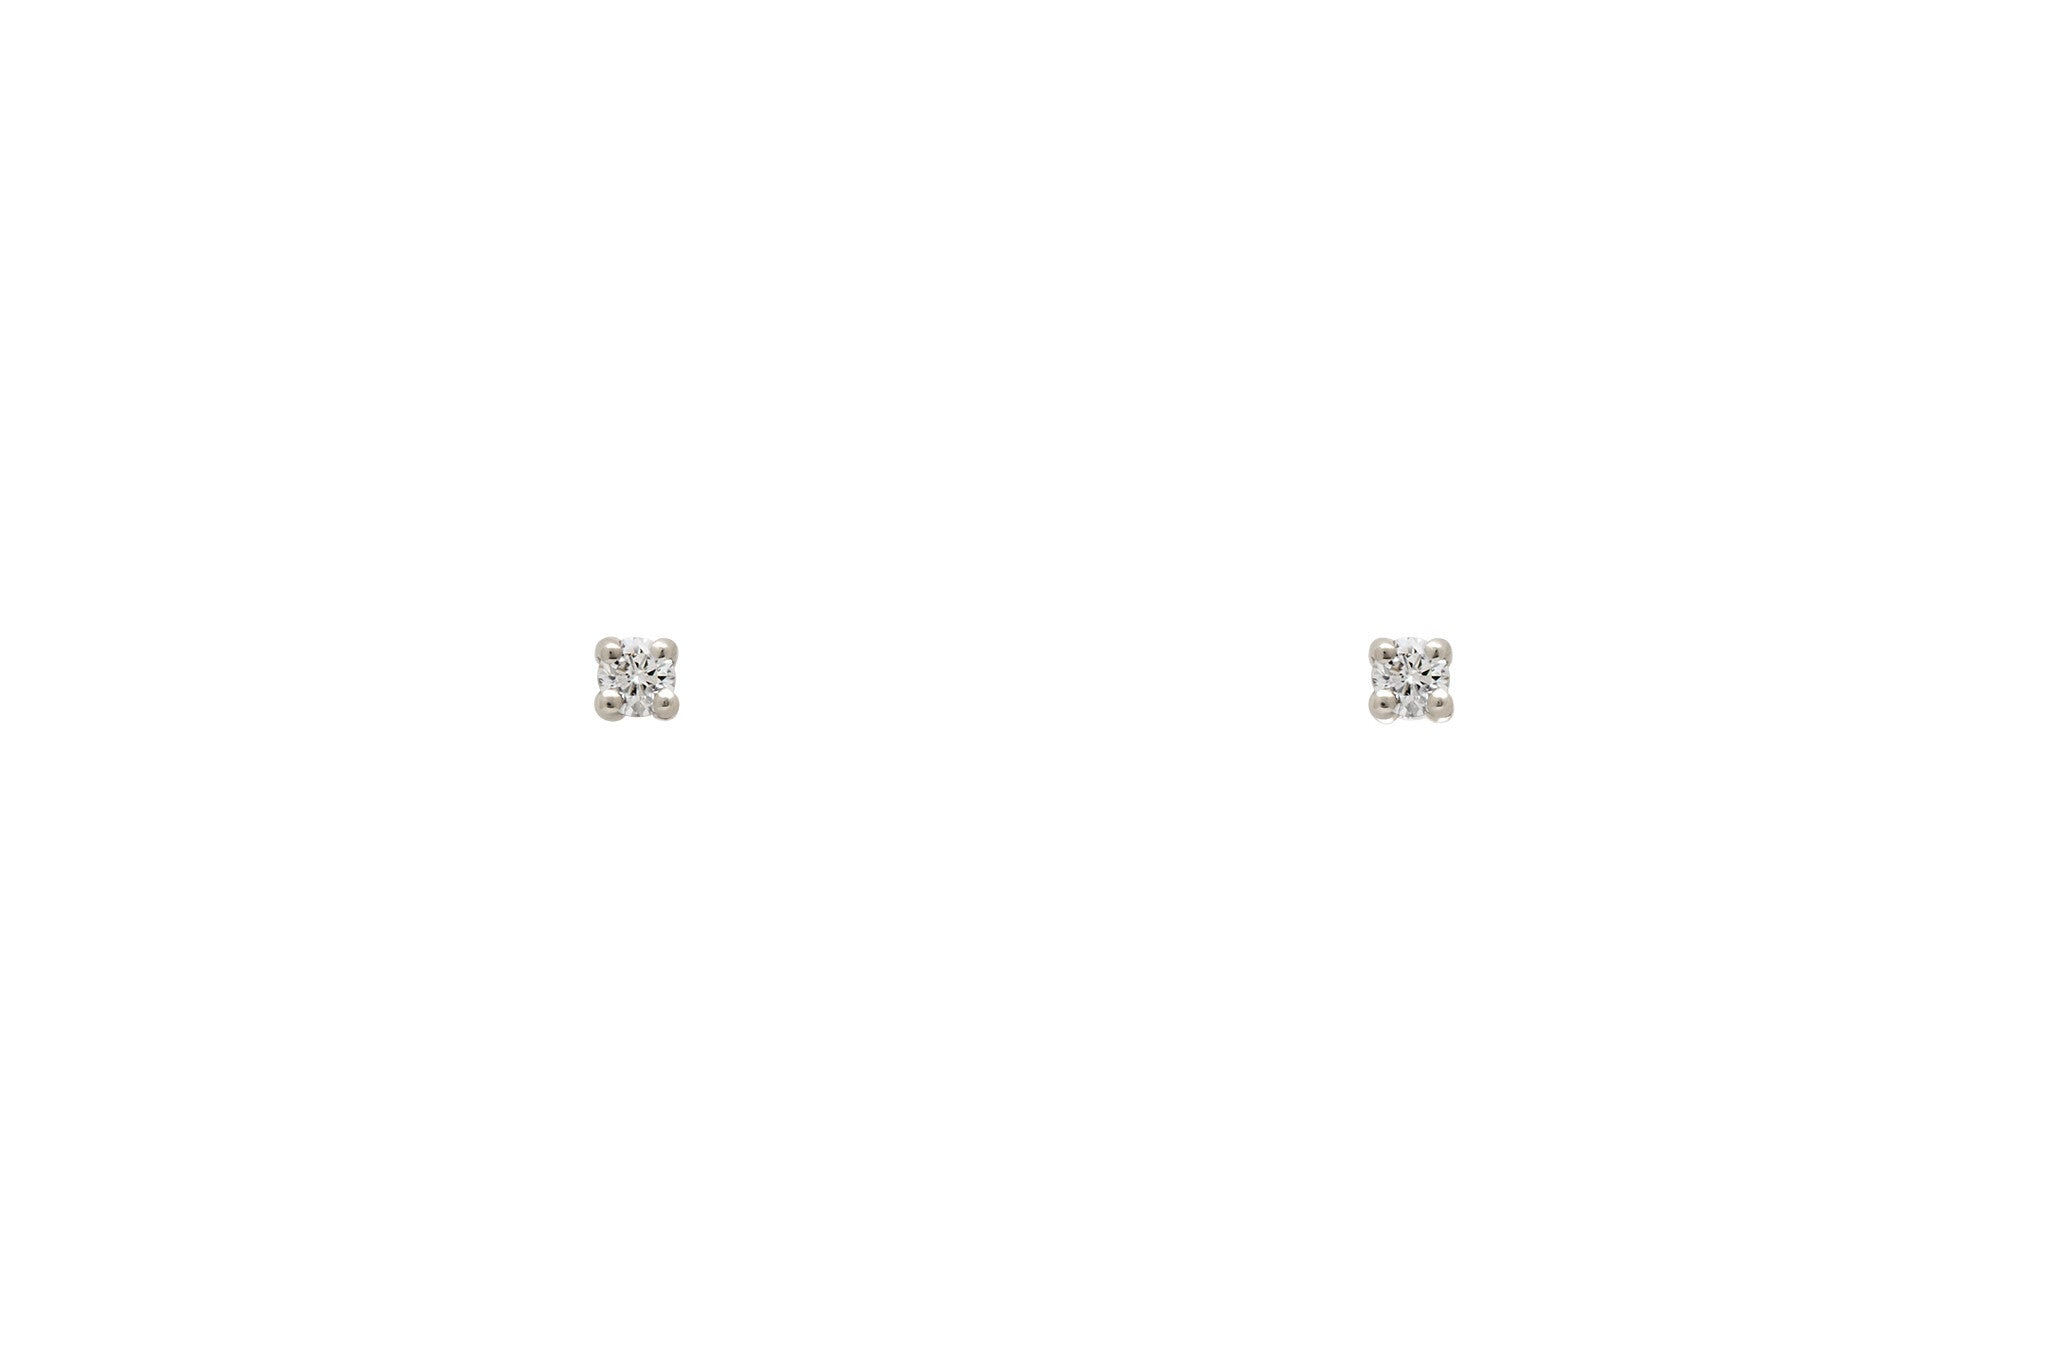 Platinum White Diamond Stud Earrings